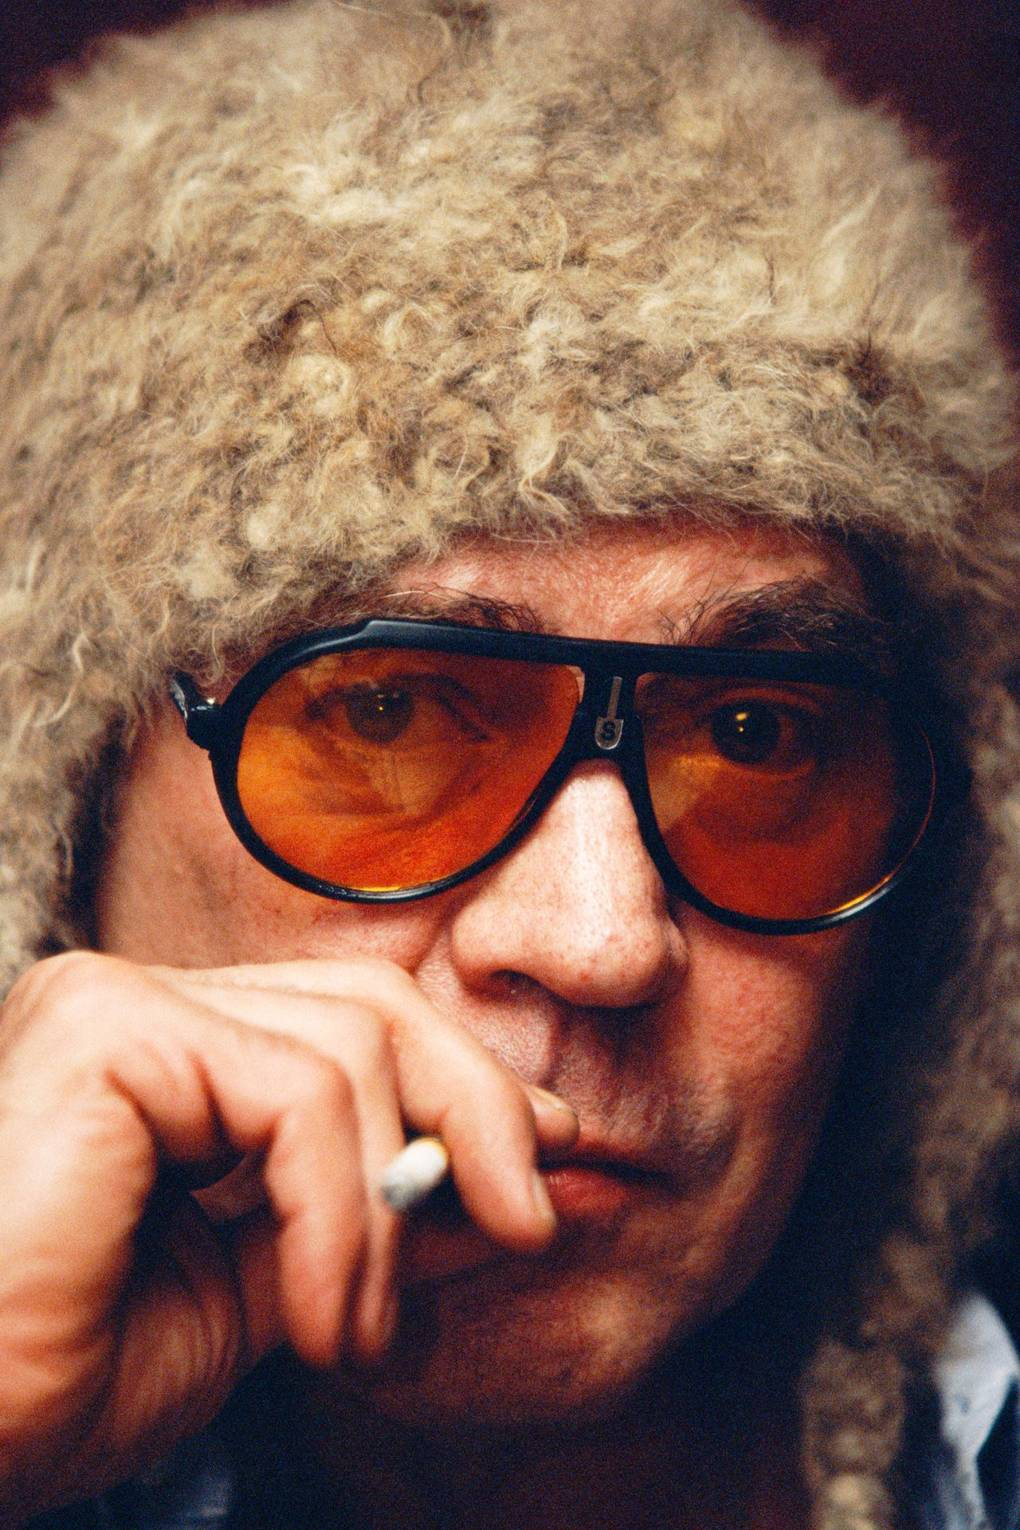 Hunter S Thompson quotes: what really happened when he came to London |  British GQ